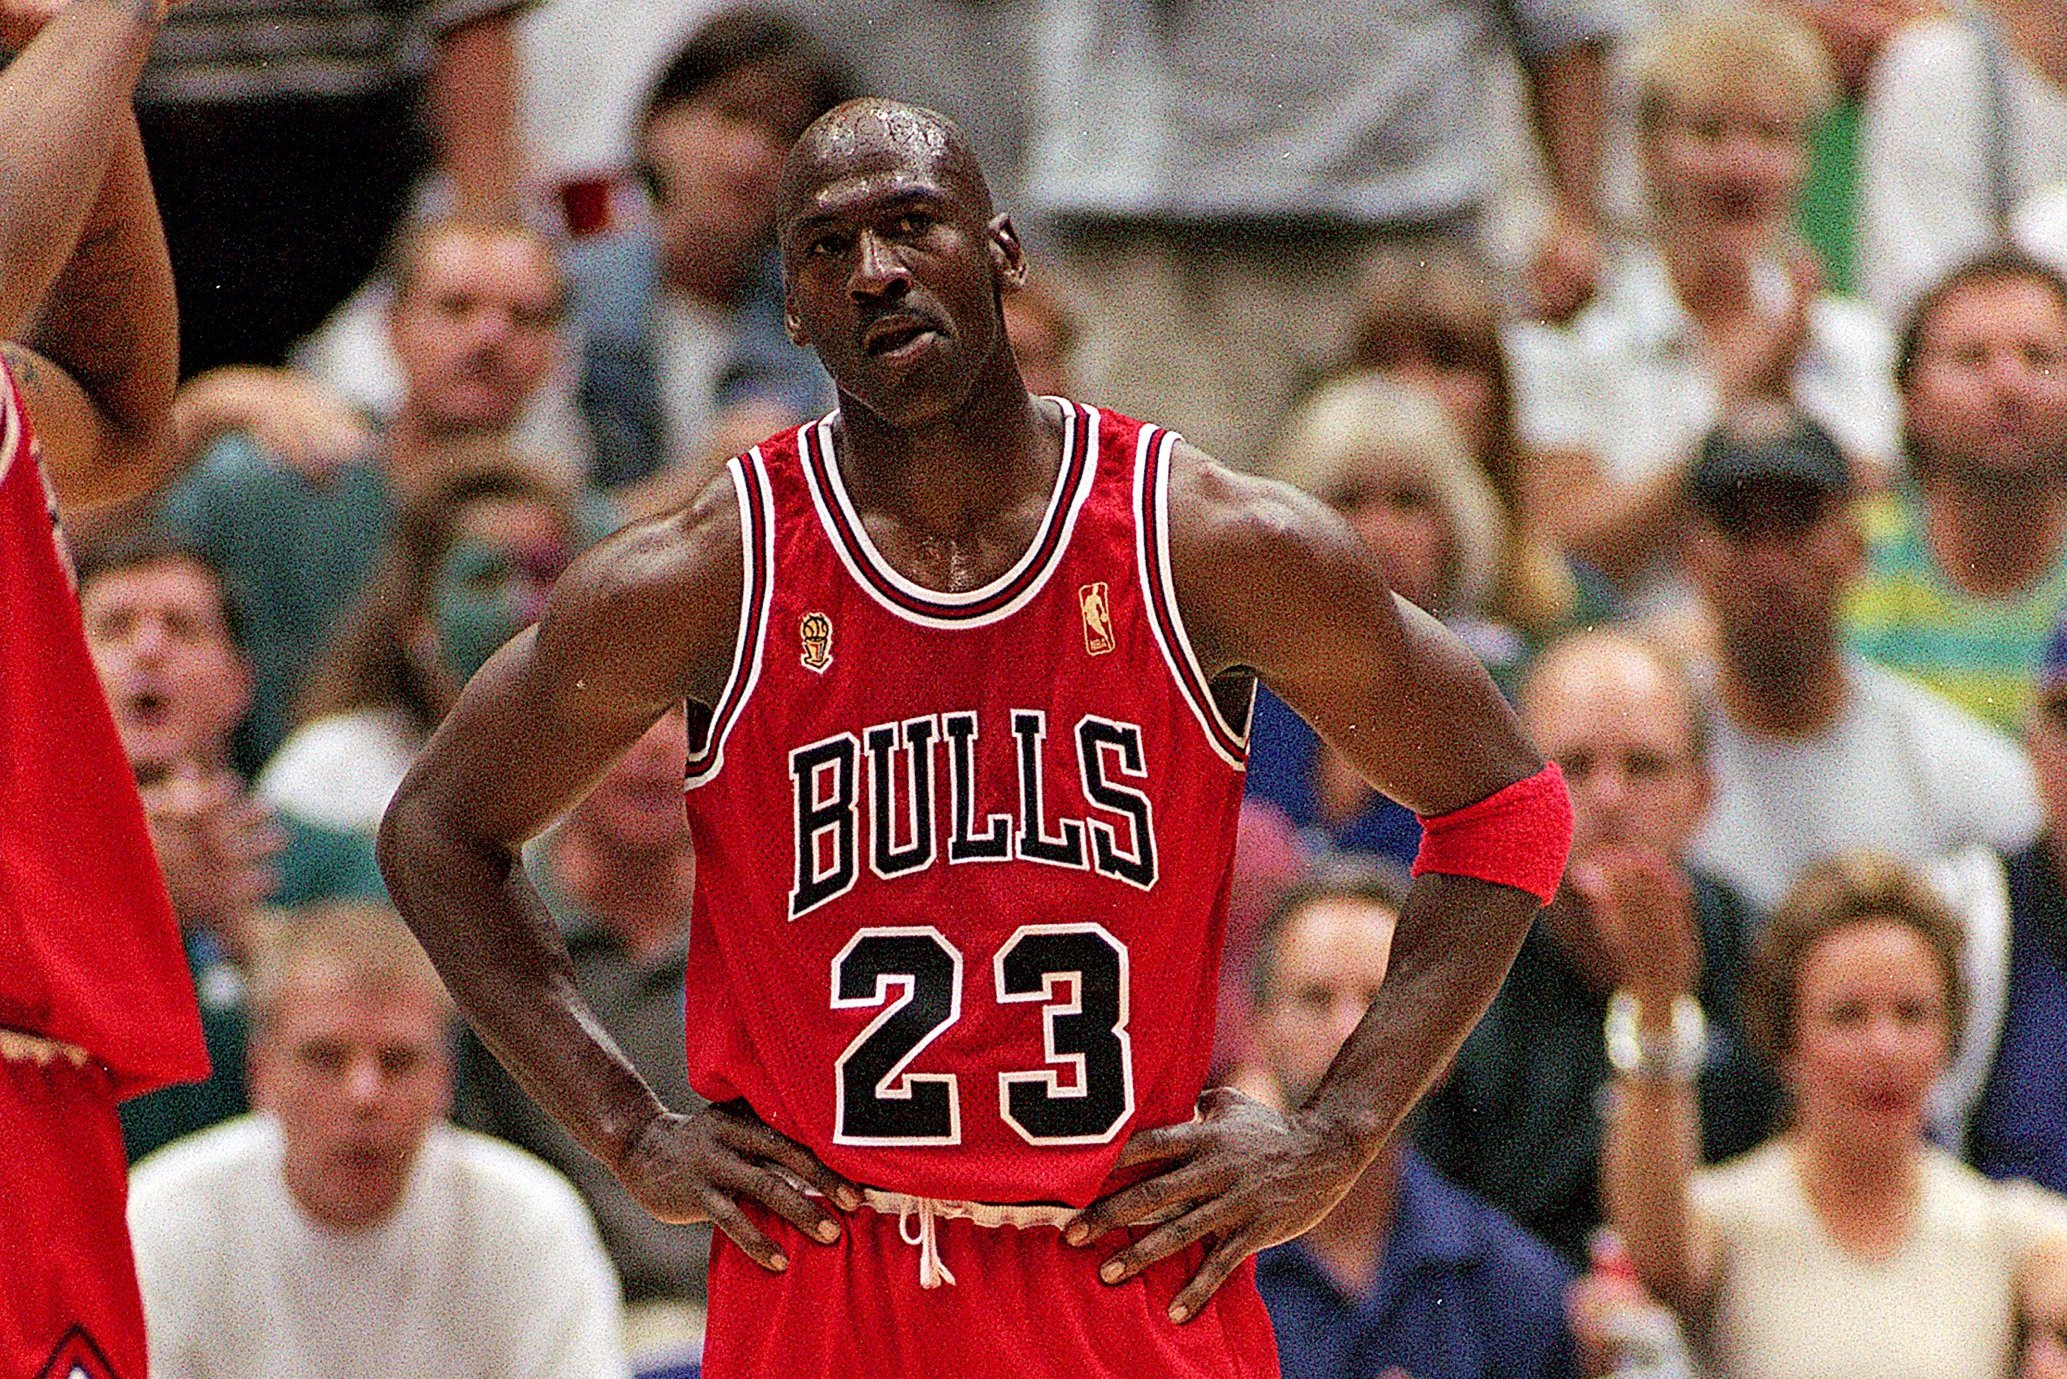 Gimnasia Conquistar Perla  Trainer Says Michael Jordan's Famous 'Flu Game' Was Result of Poisoning |  Bleacher Report | Latest News, Videos and Highlights